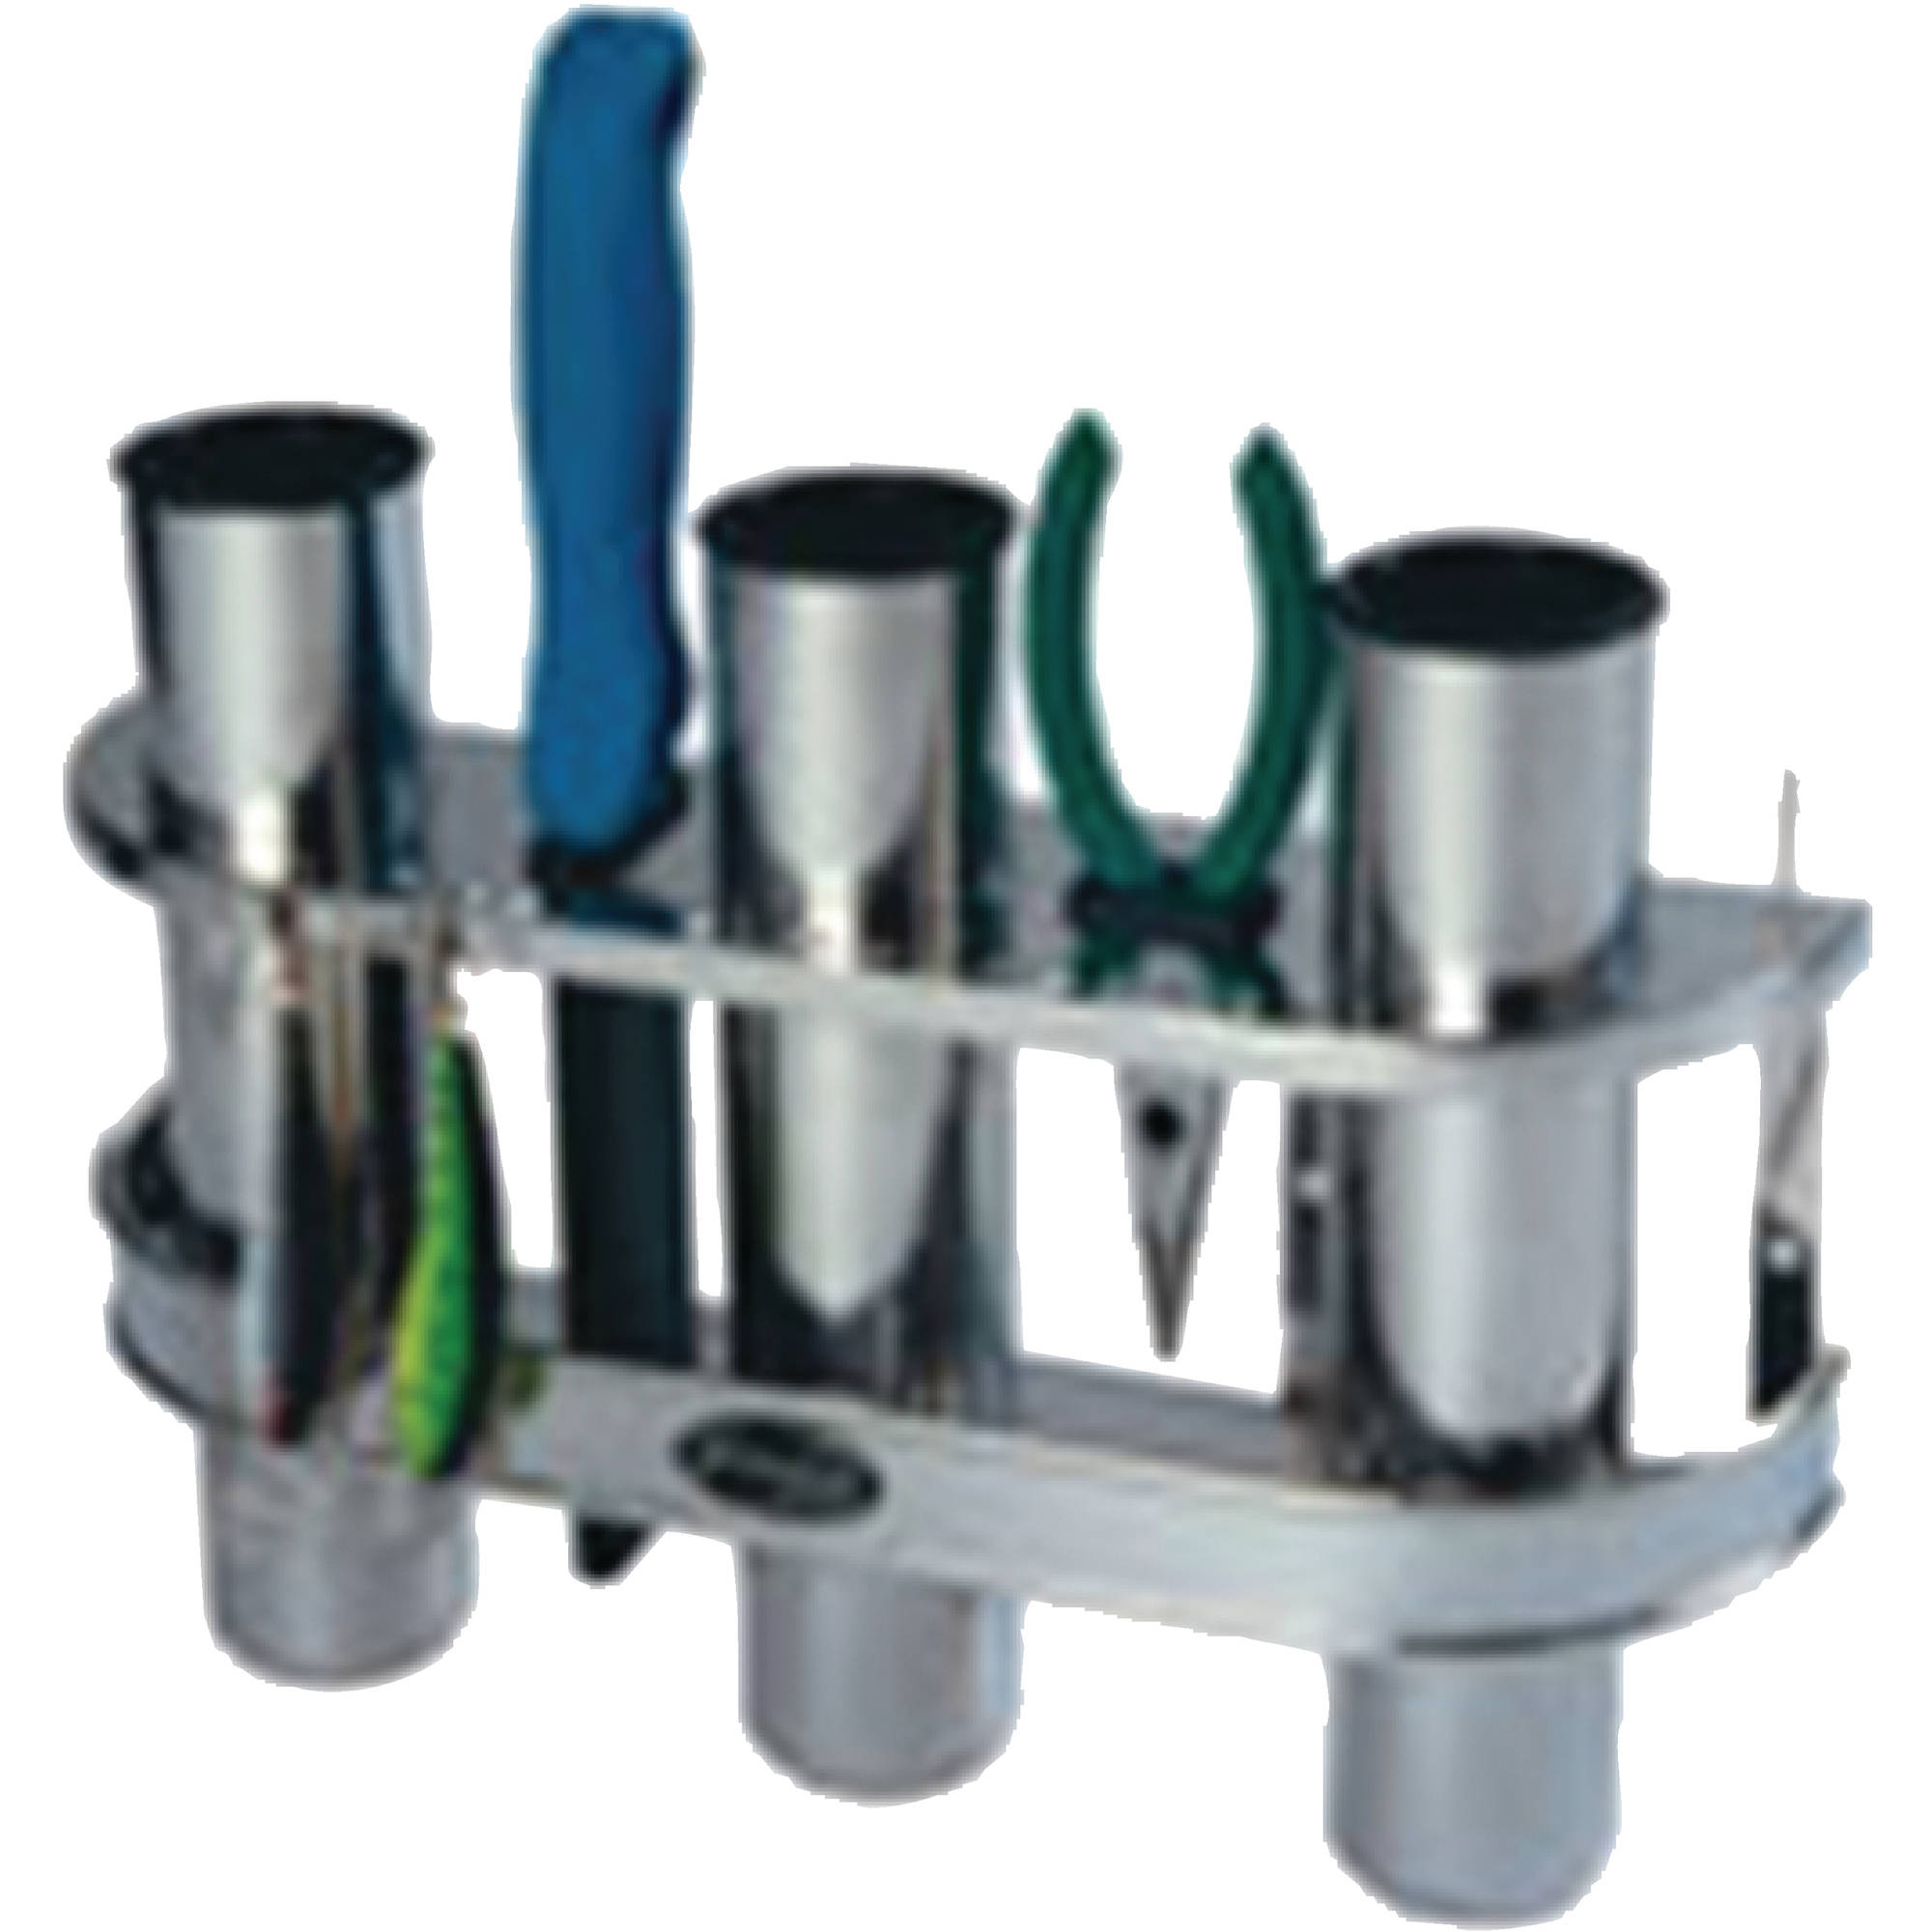 Tempress 22210 Stainless Steel Triple Rod Holder by Tempress Products LLC